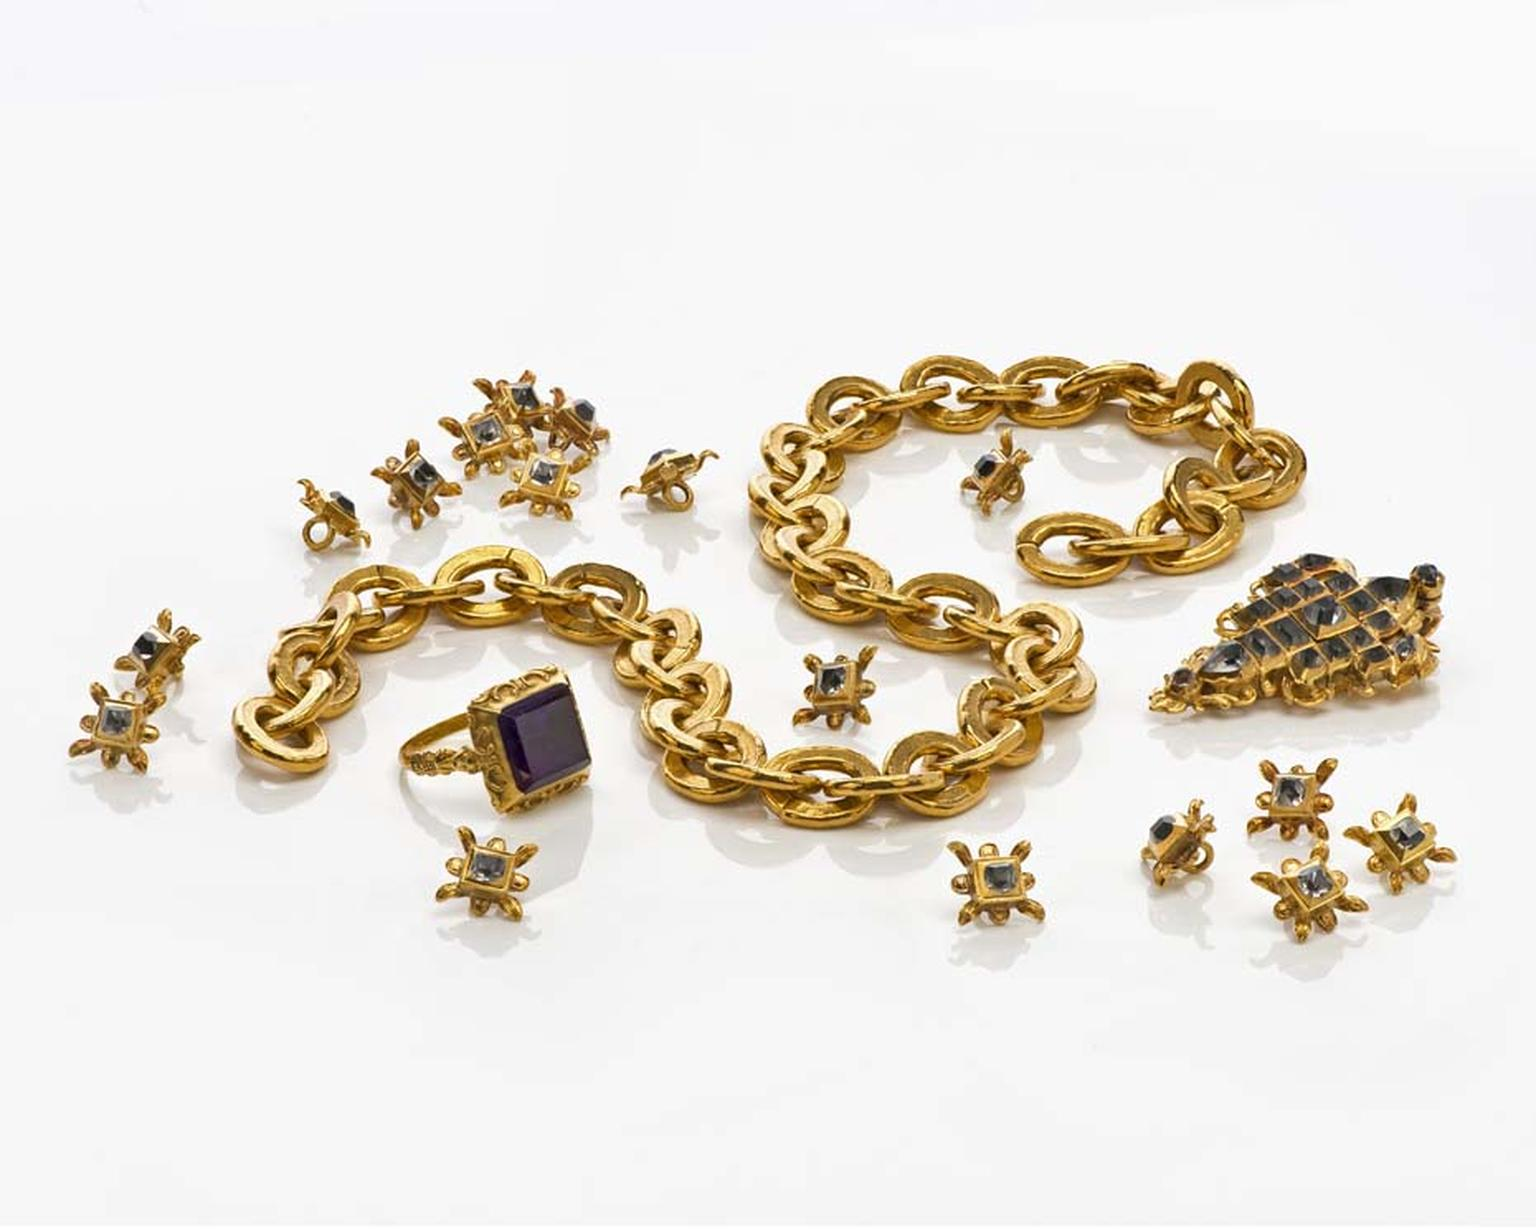 This remarkable set of 18 buttons, jewel and chain, being sold by Deborah Elvira for €330,000 at TEFAF Maastricht, was recovered from the Spanish Galleon Nuestra Señora de la Pura y Limpia Concepción in the first half of the 17th century.